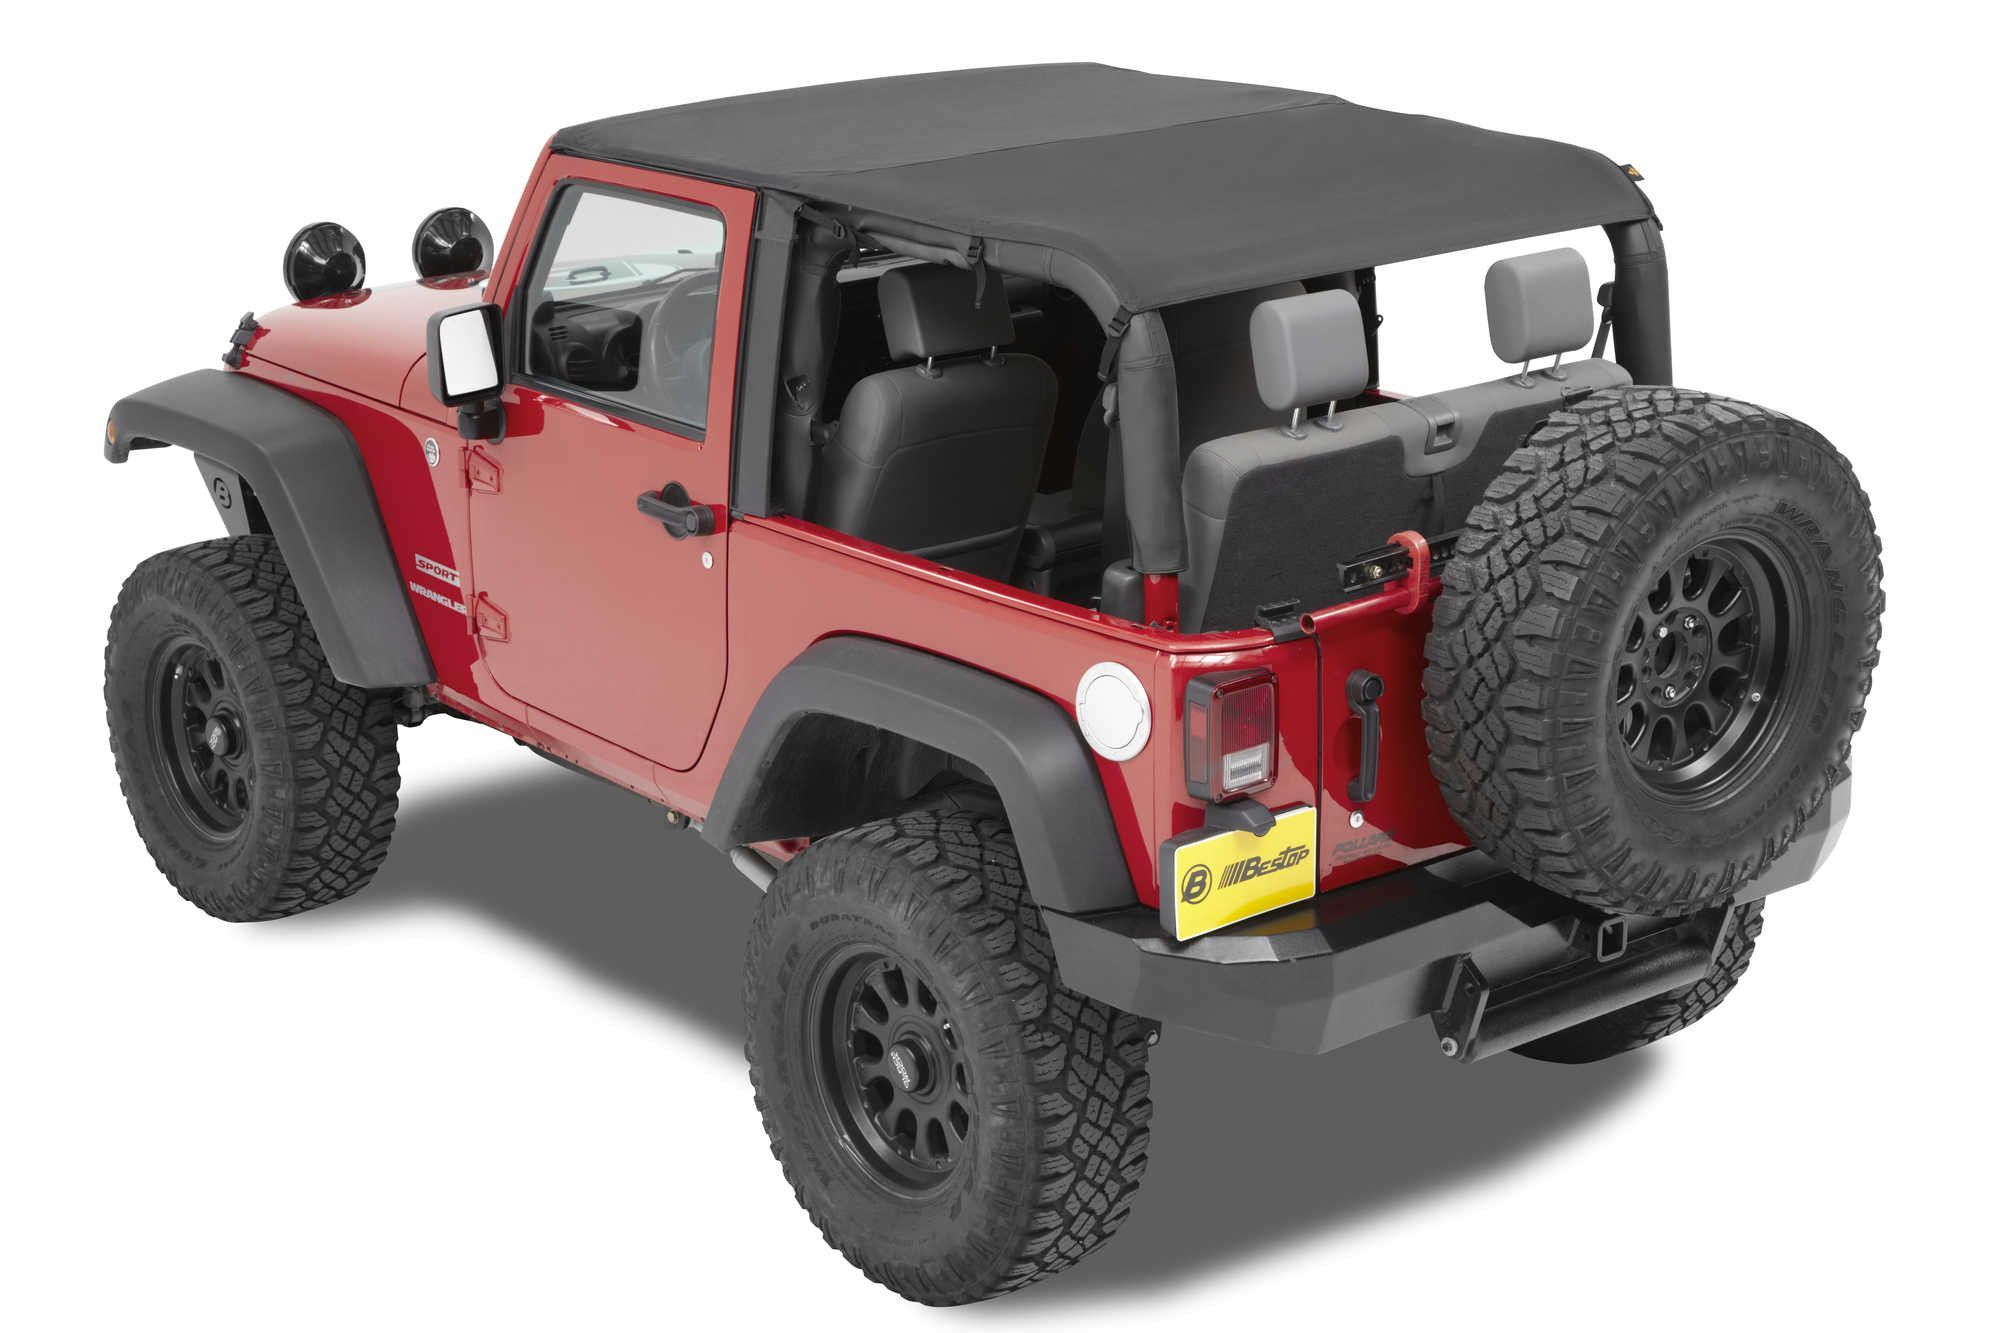 Bestop Cable Style Safari Bikini Top For 10 16 Jeep Wrangler JK 2 Door